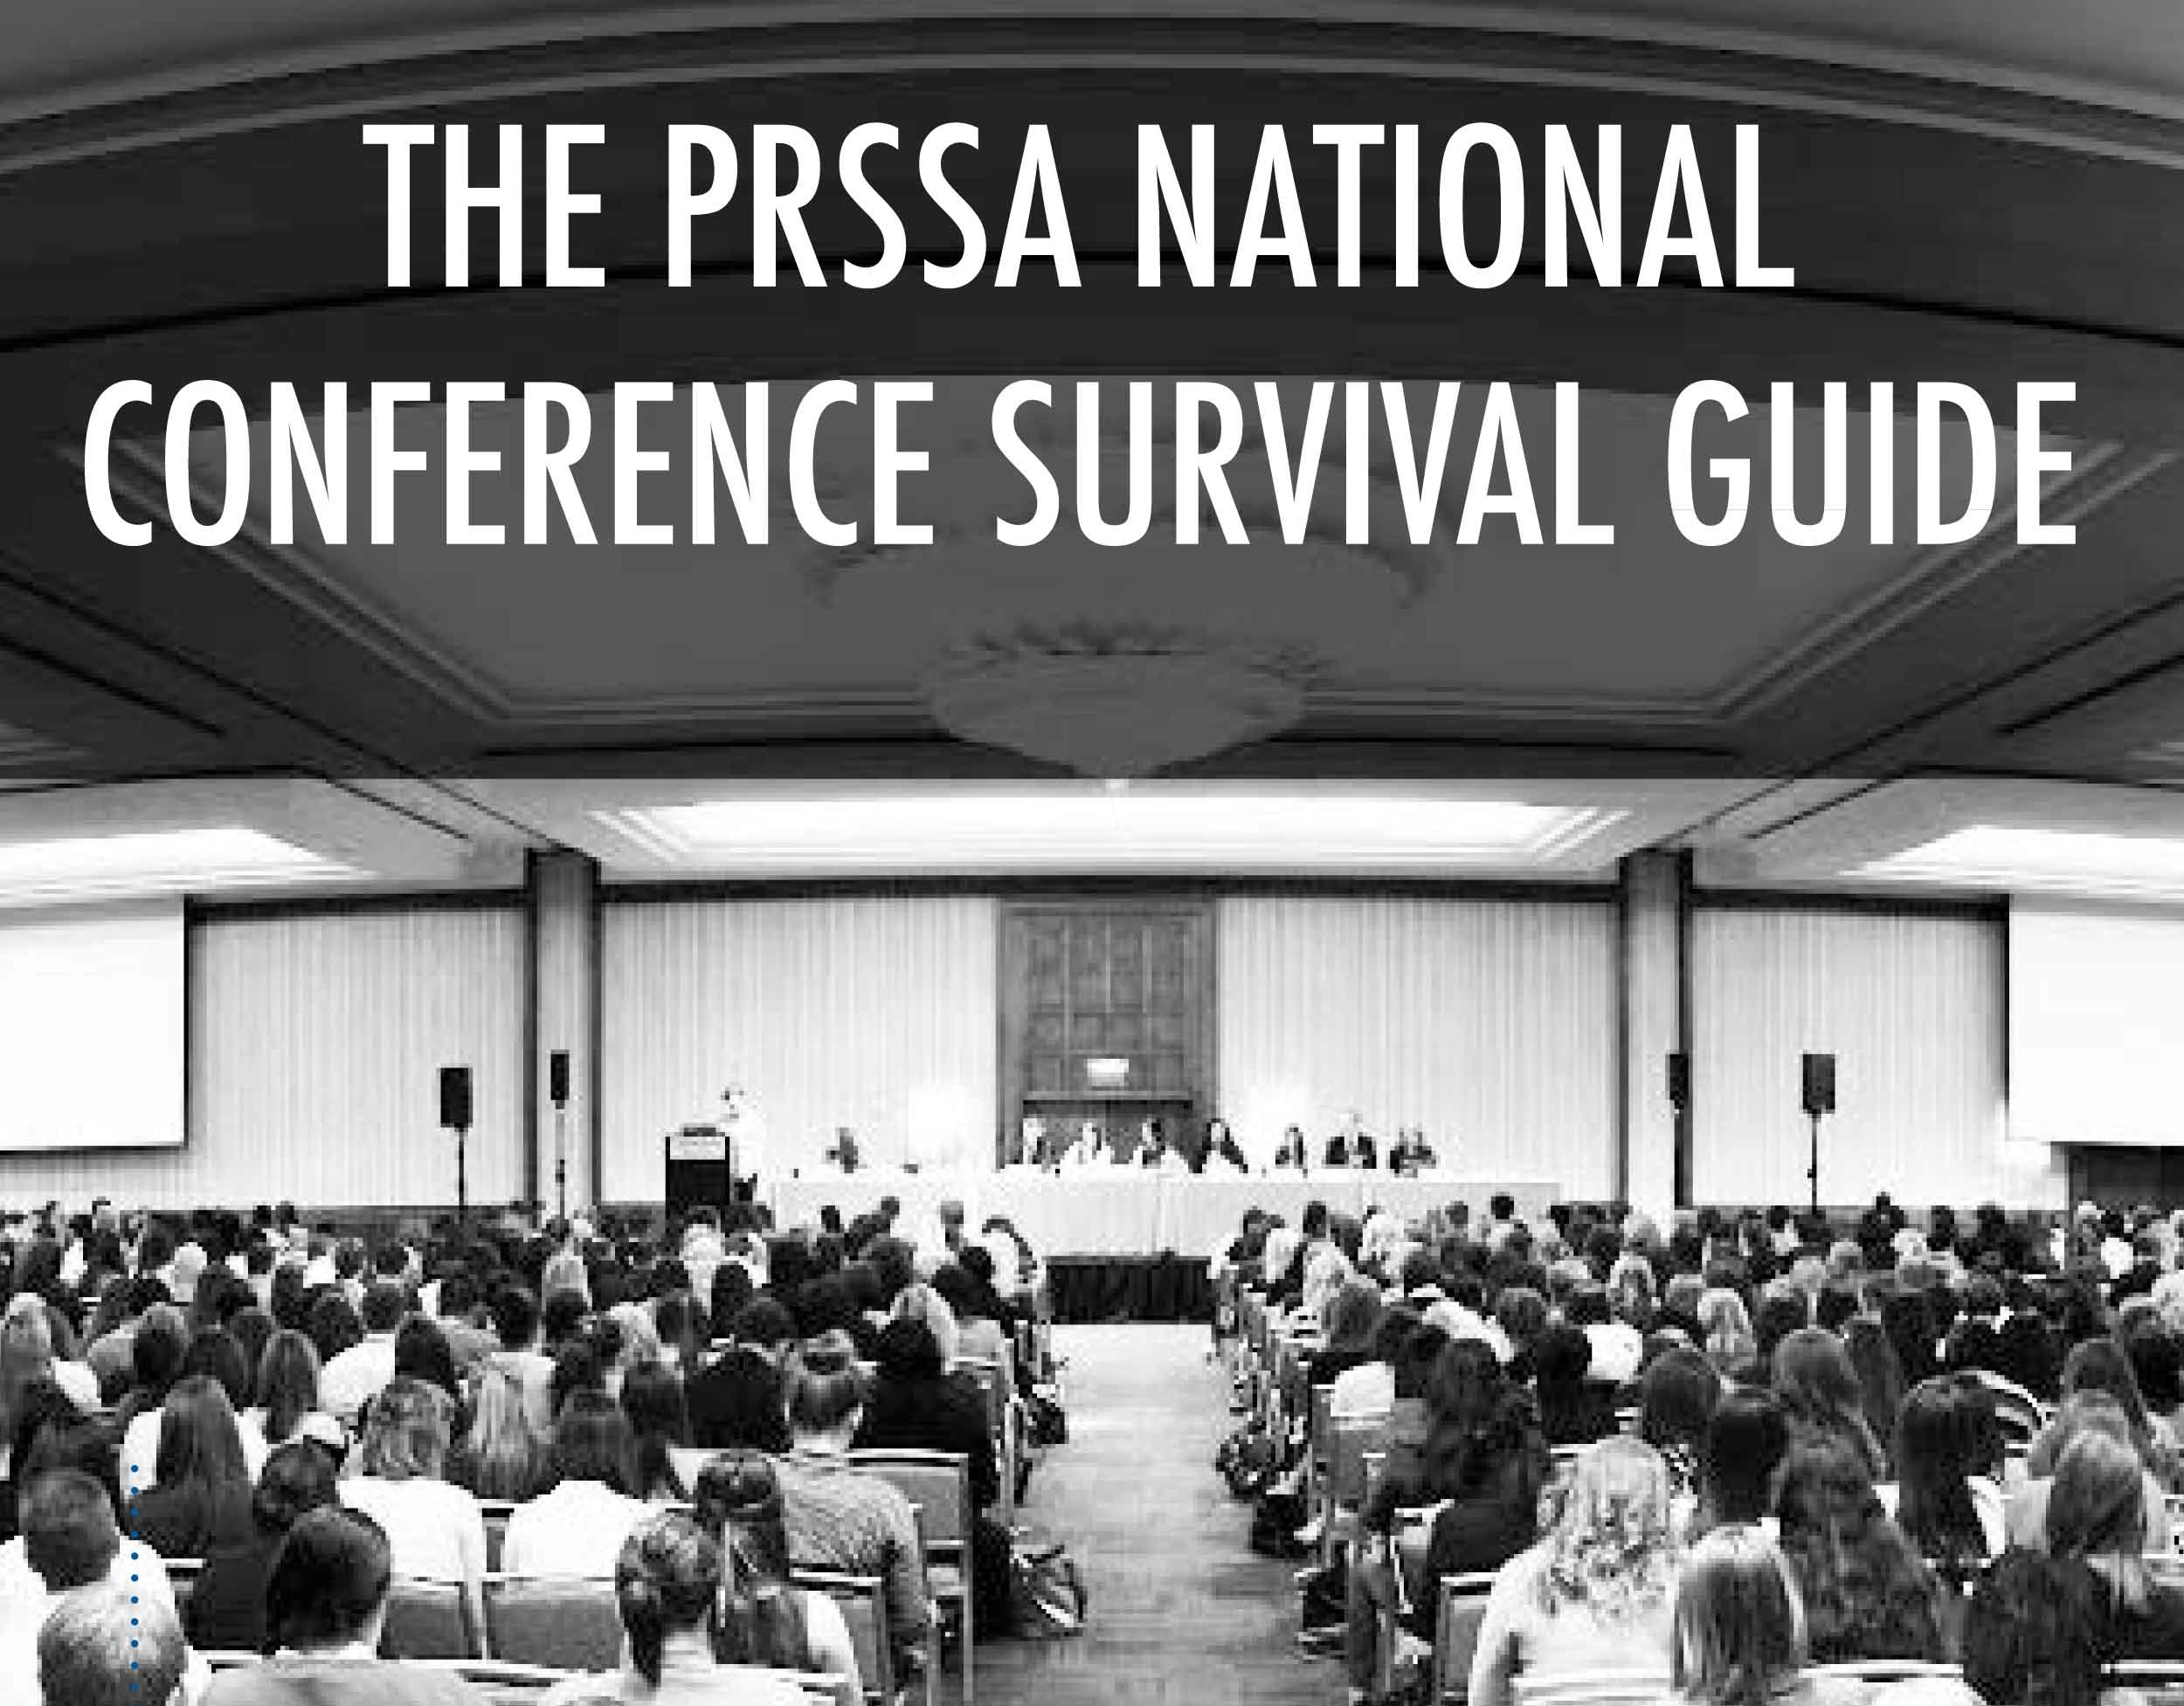 PRSSA 2013 National Conference Survival Guide [Infographic]